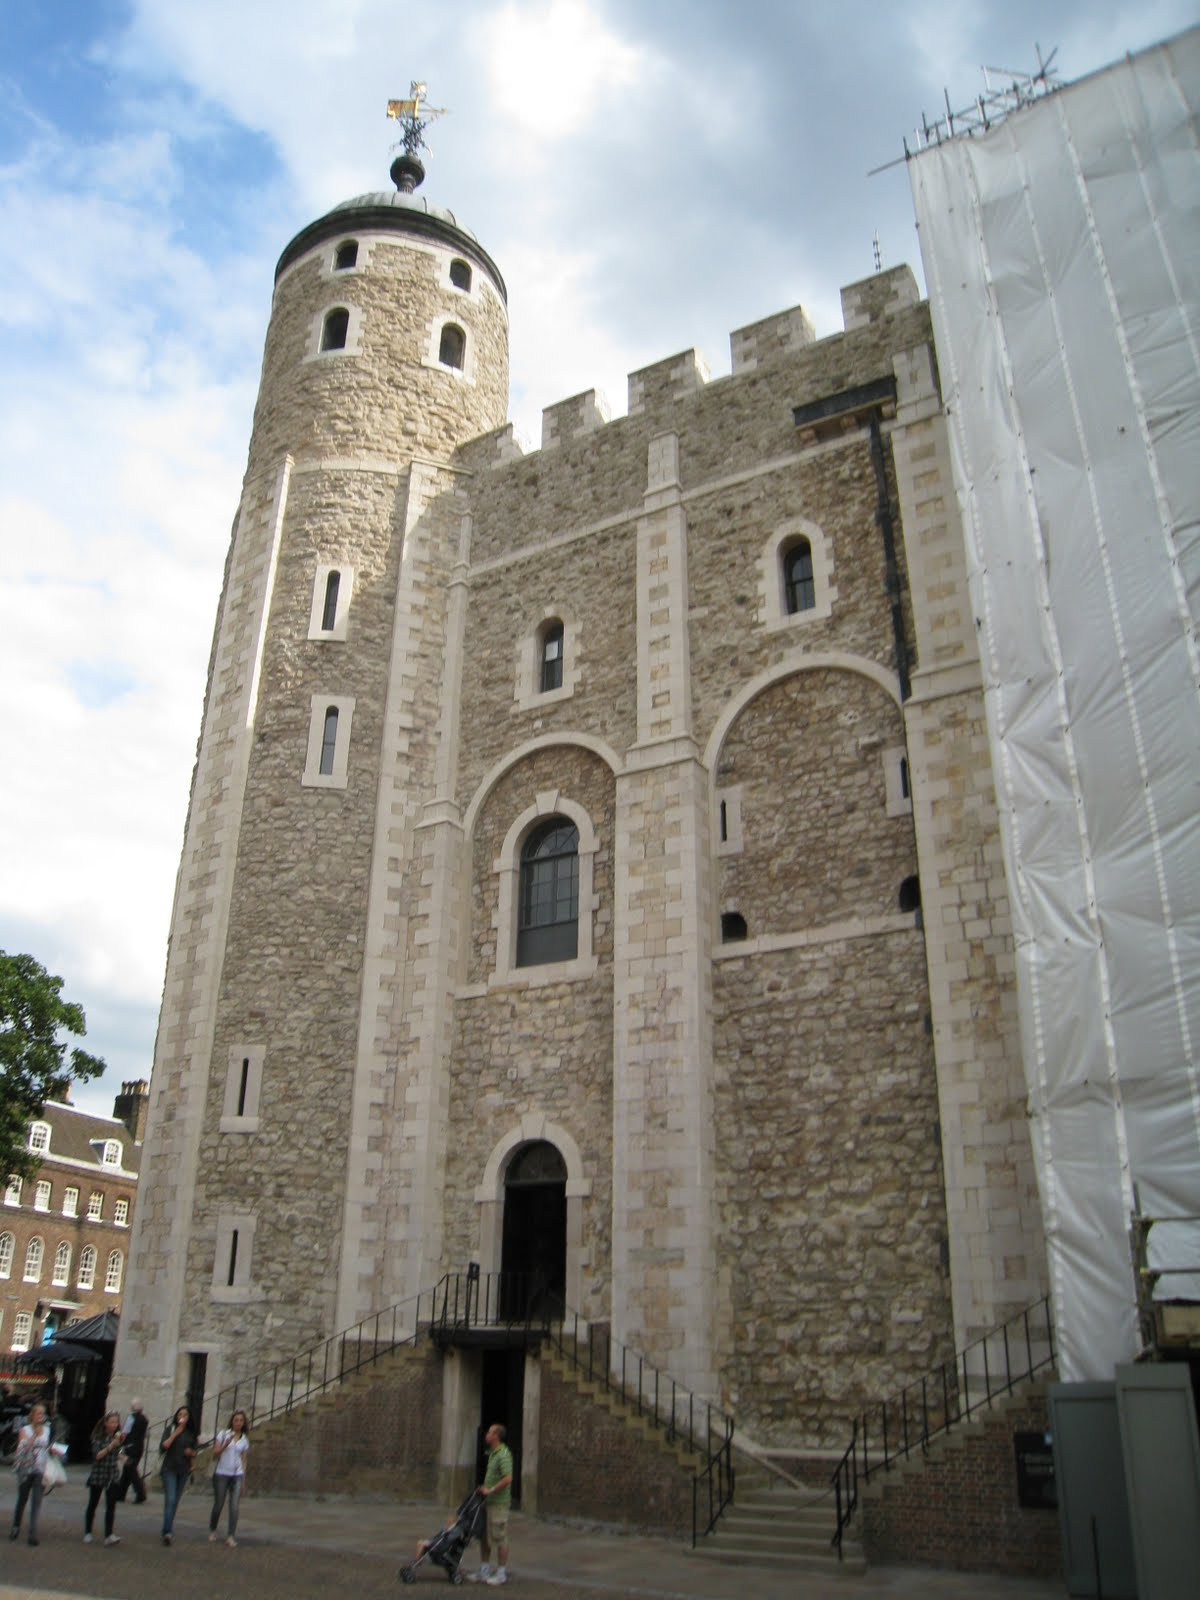 Make it count: Day #102 - London, England (Tower of London